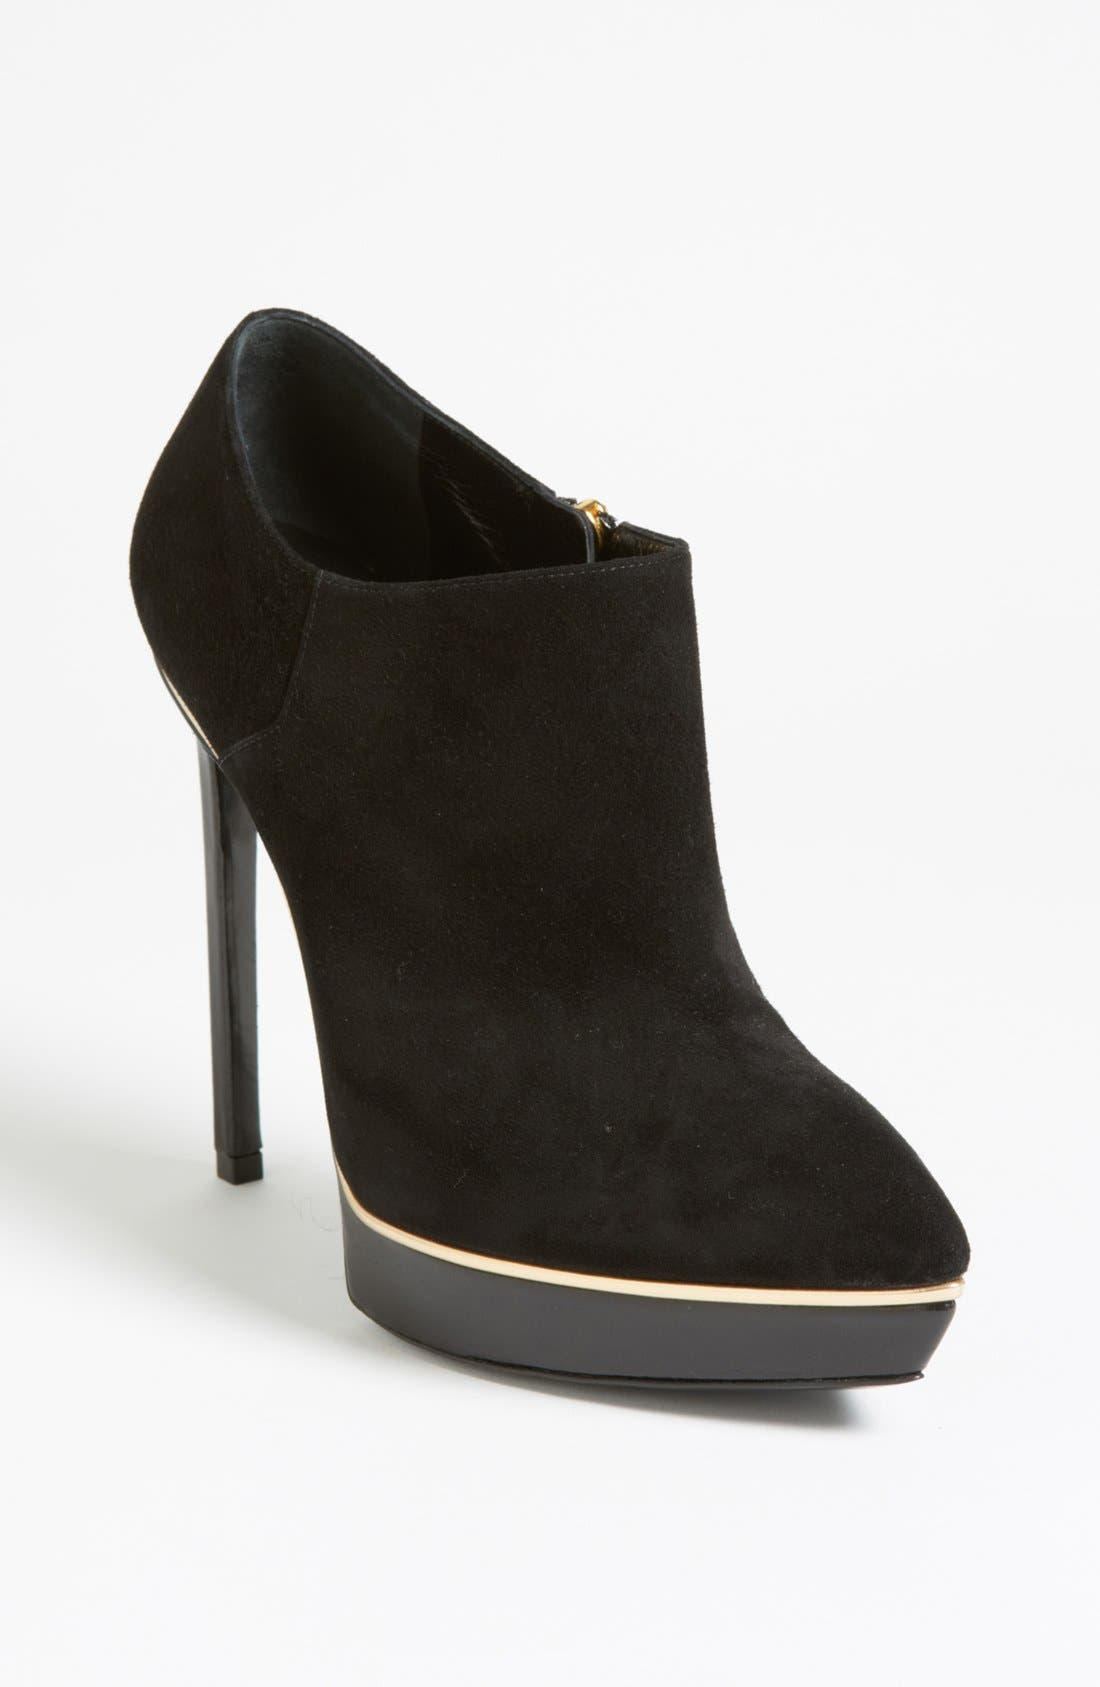 Alternate Image 1 Selected - Saint Laurent 'Janie Metal' Bootie